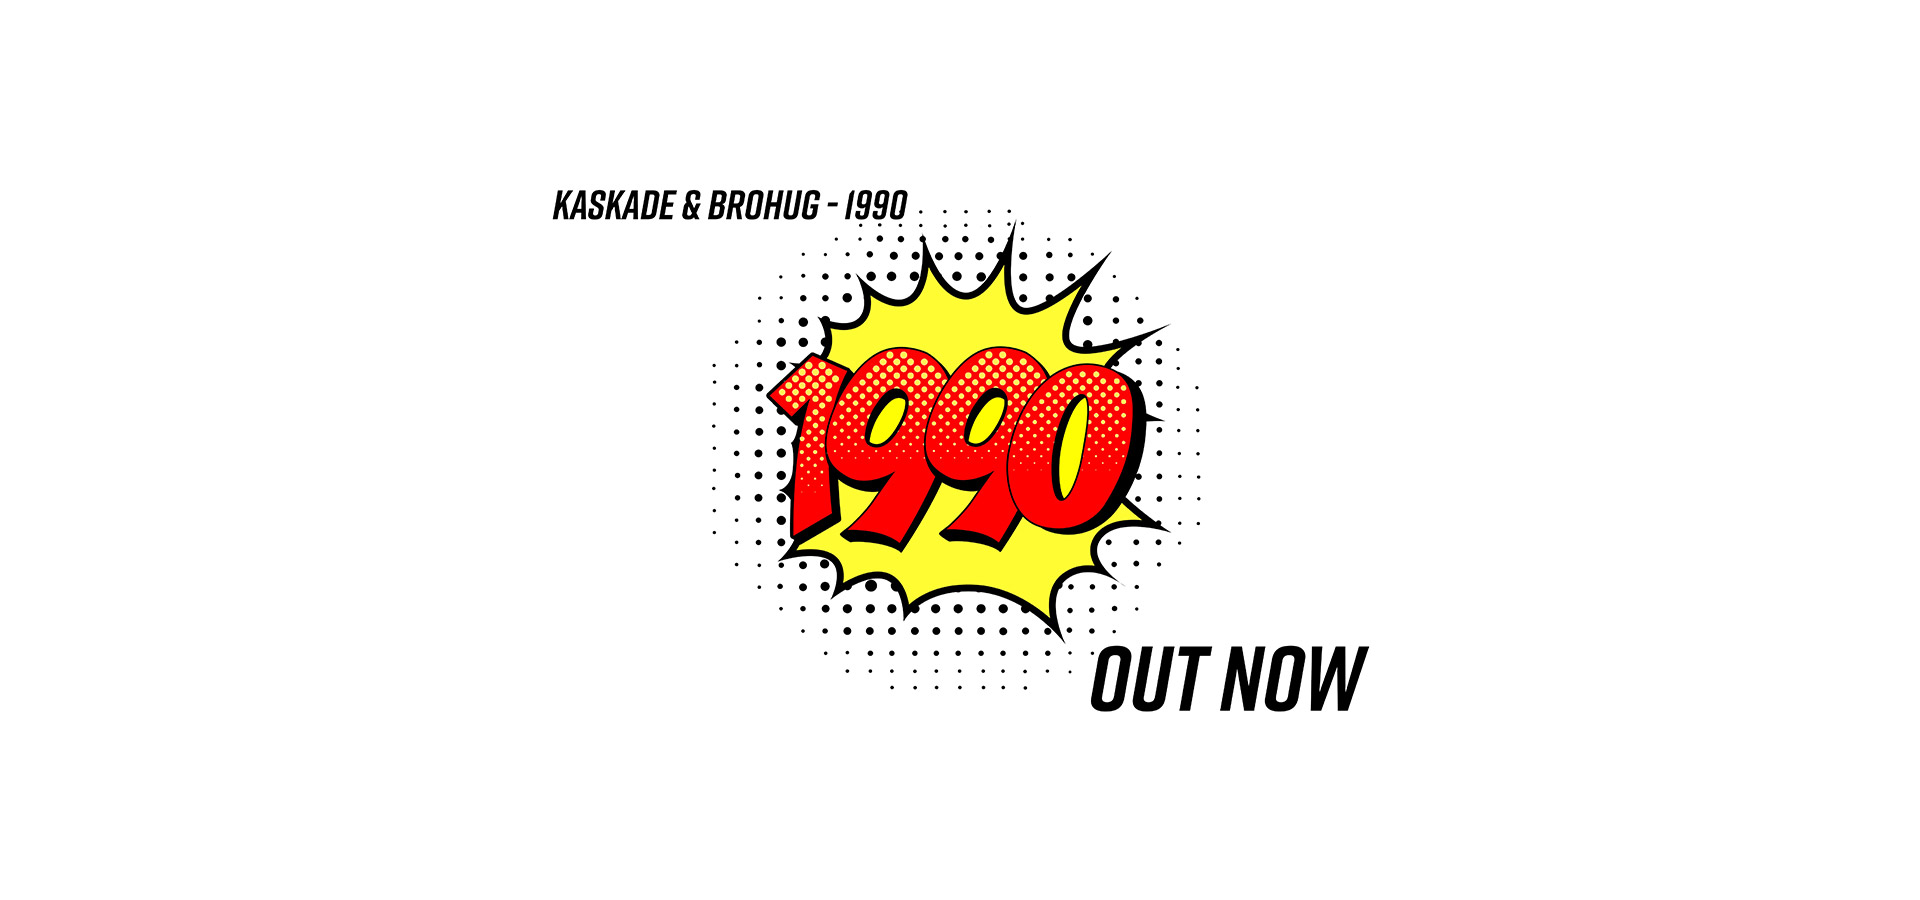 1990 (WITH BROHUG) Artwork